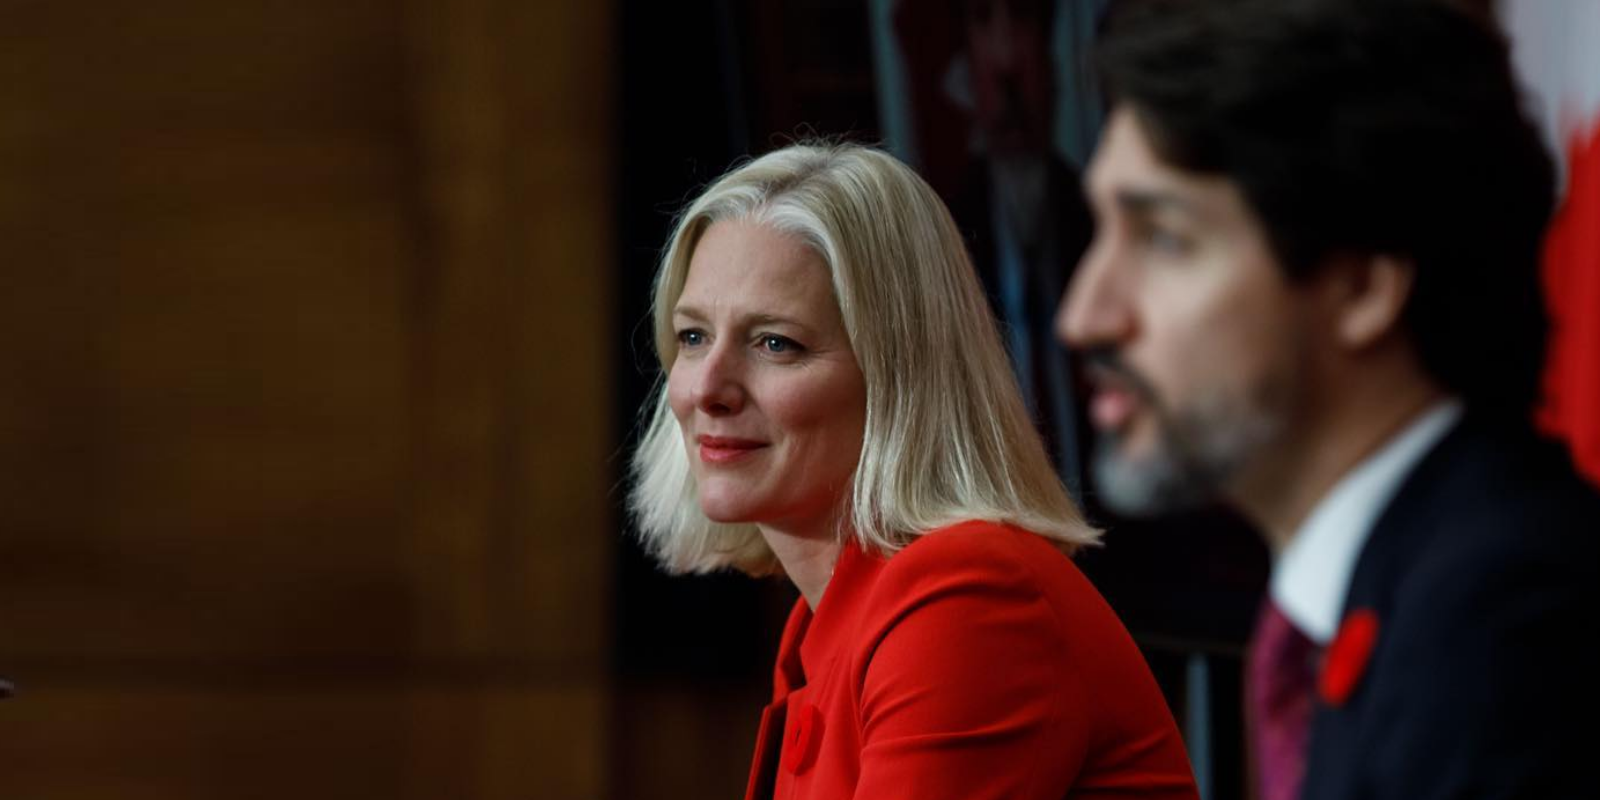 McKenna's Infrastructure Canada pays for tennis courts, Wi-Fi in Lower Mainland